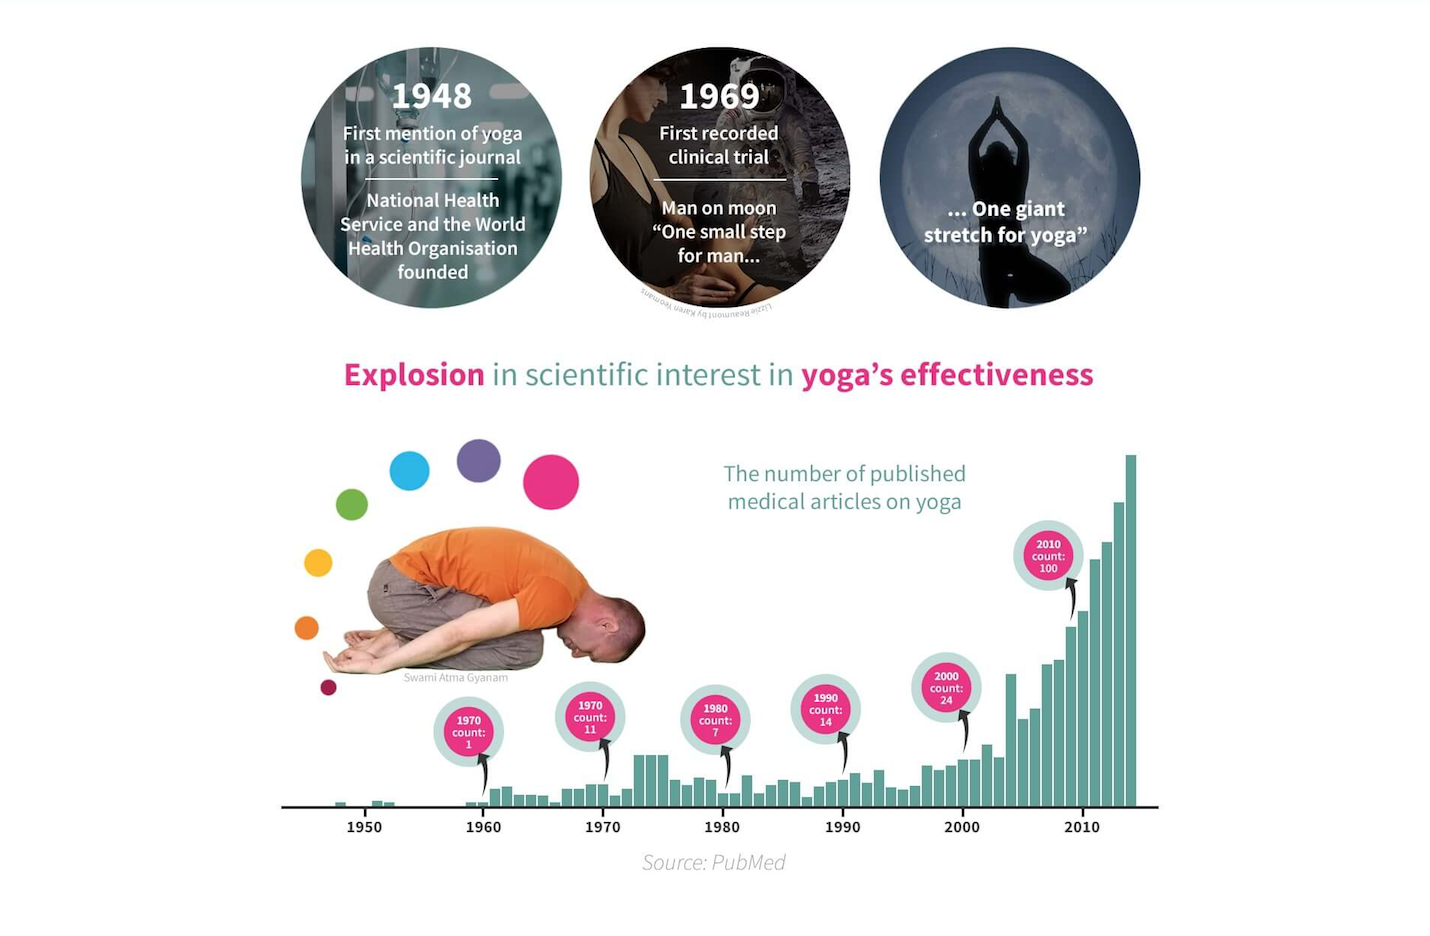 Growth in clinical studies on yoga